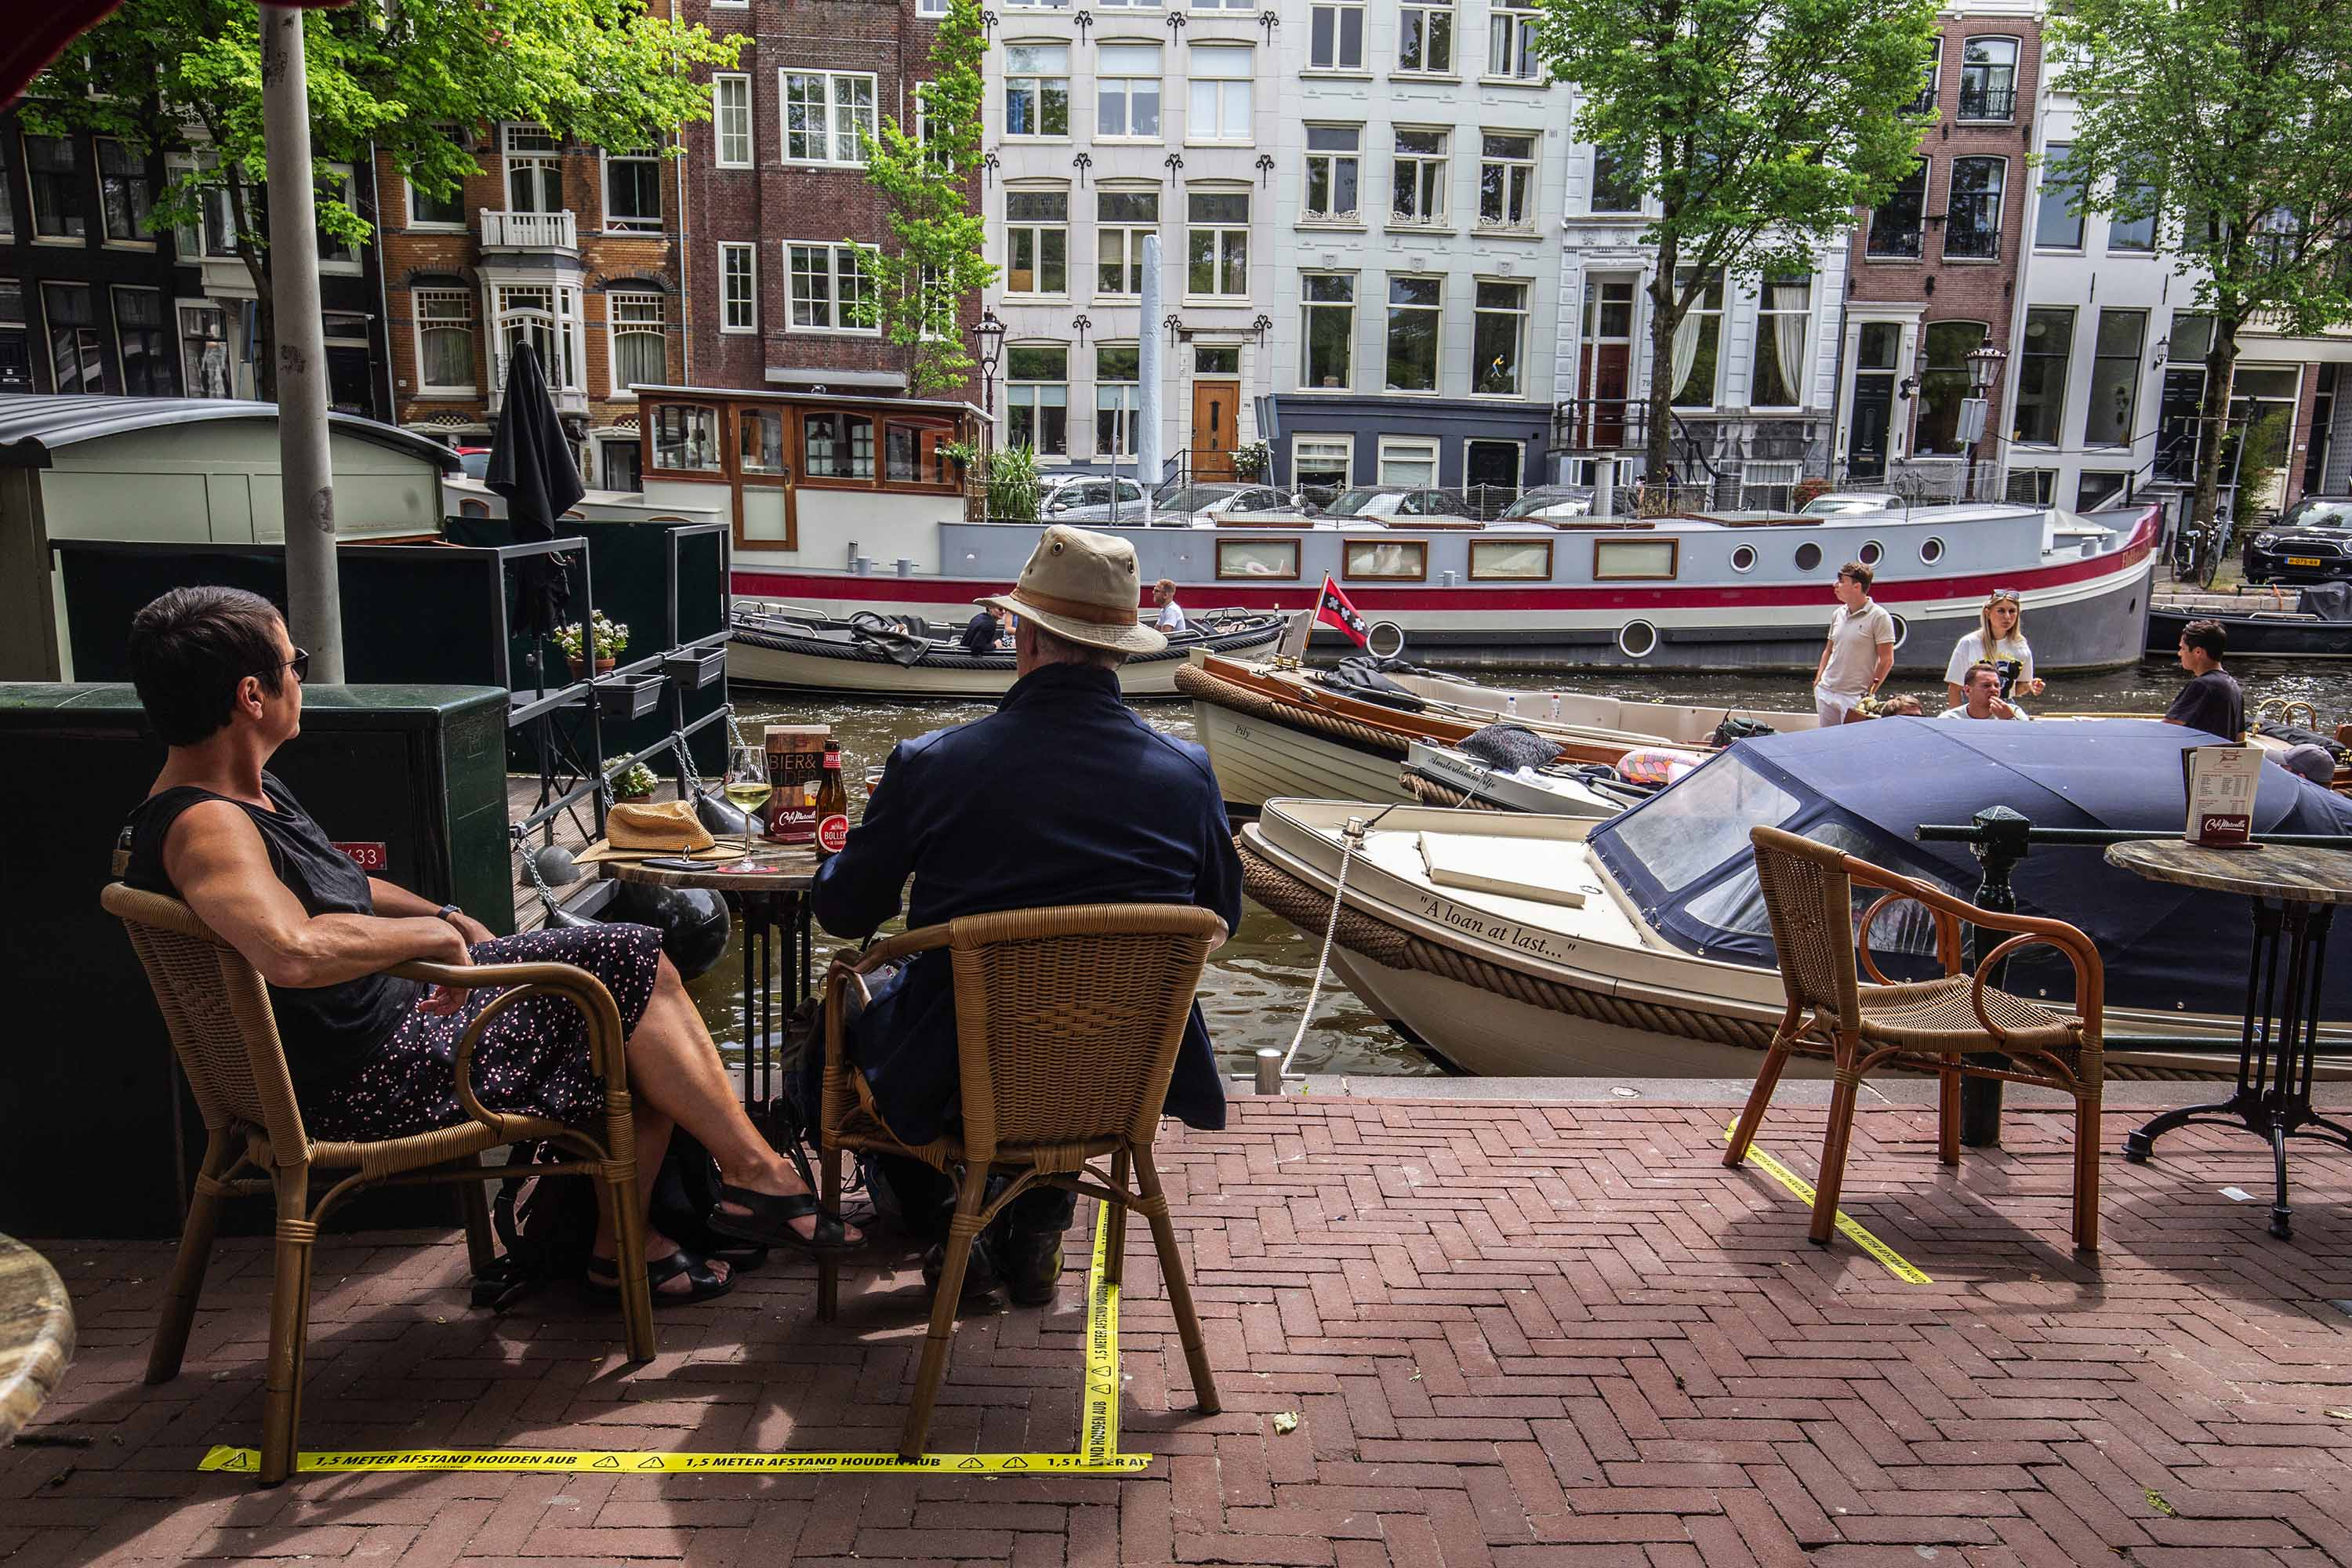 Customers sit at tables with social distancing tape markers at a cafe in Amsterdam, Netherlands, on Monday, June 1.